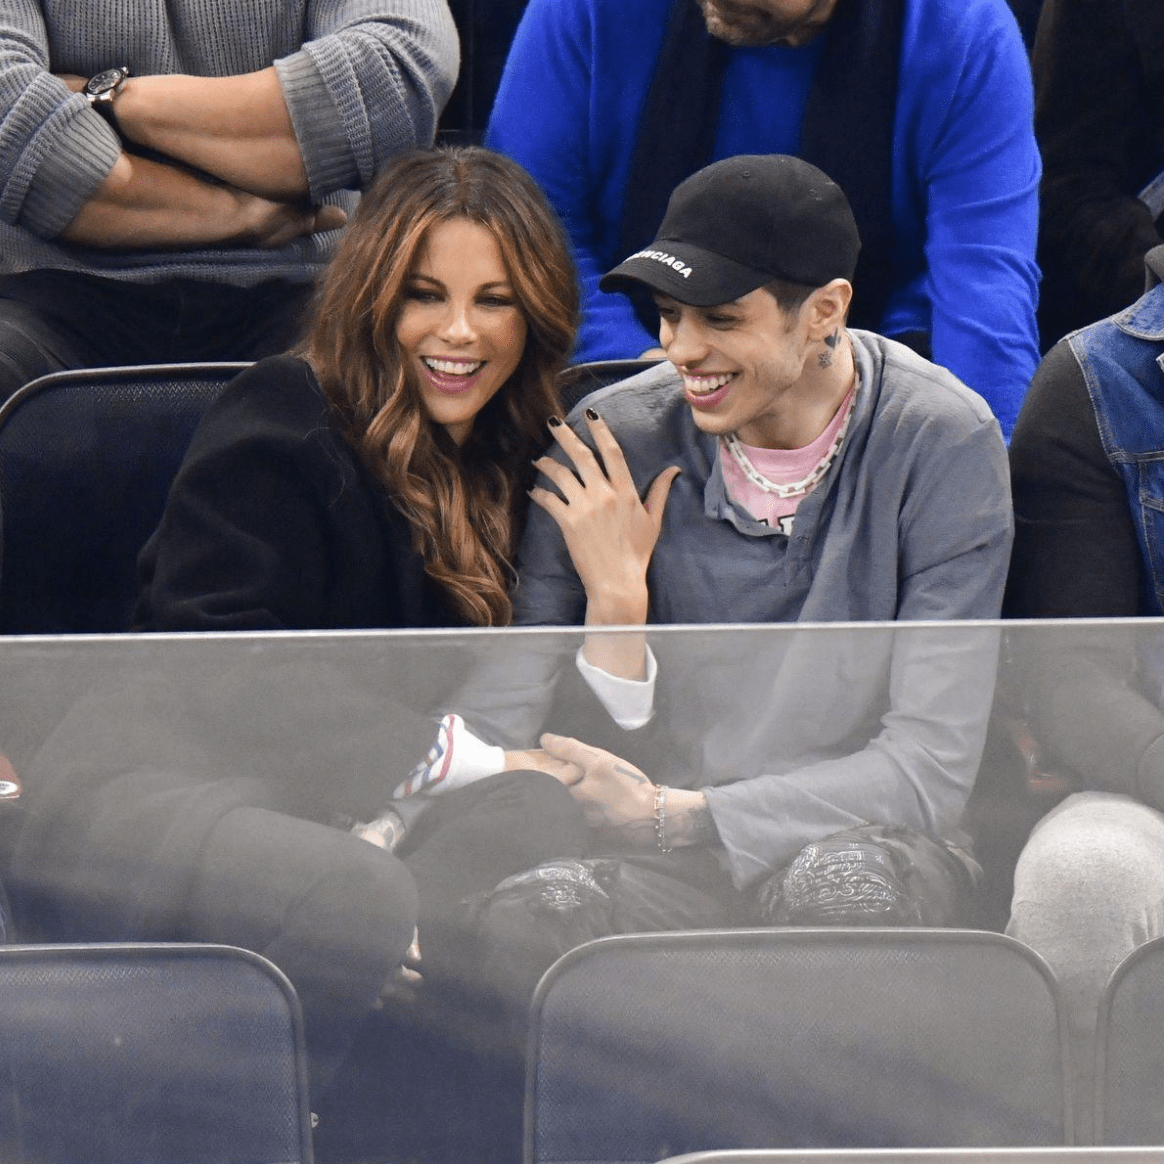 Pete Davidson And Kate Beckinsale Pictures With Images Kate Beckinsale Pictures Kate Beckinsale Celebrity News Gossip